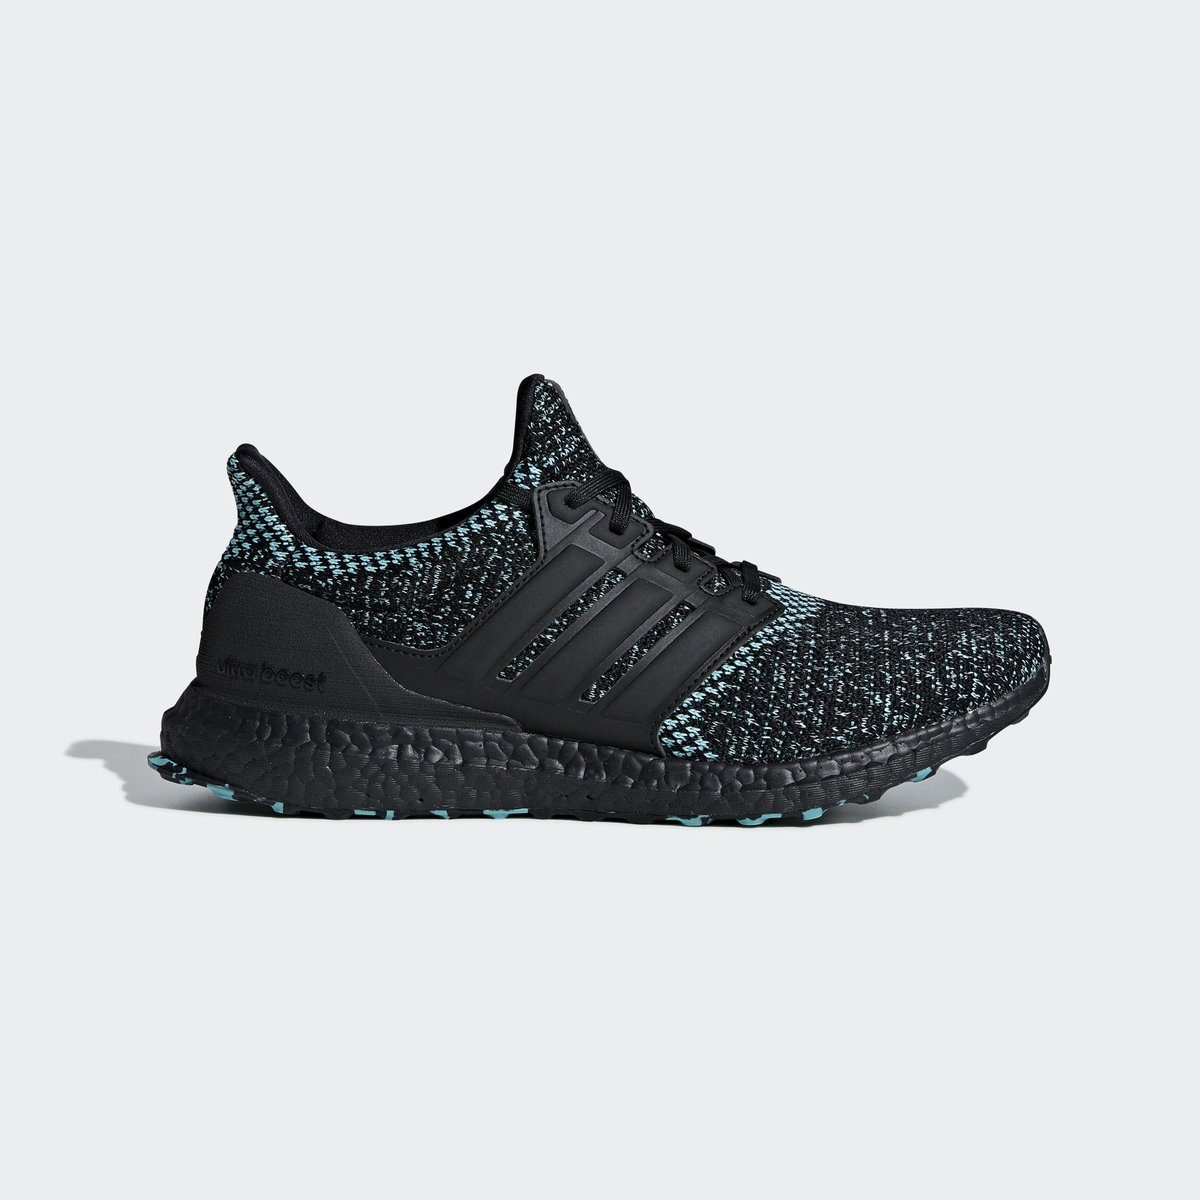 ff48c9a953253 Restocked on  FinishLine. adidas Ultra Boost Dark Granite. Sold out on   adidas US. —  https   bit.ly 2TOOEzo pic.twitter.com tqVS38VLkV